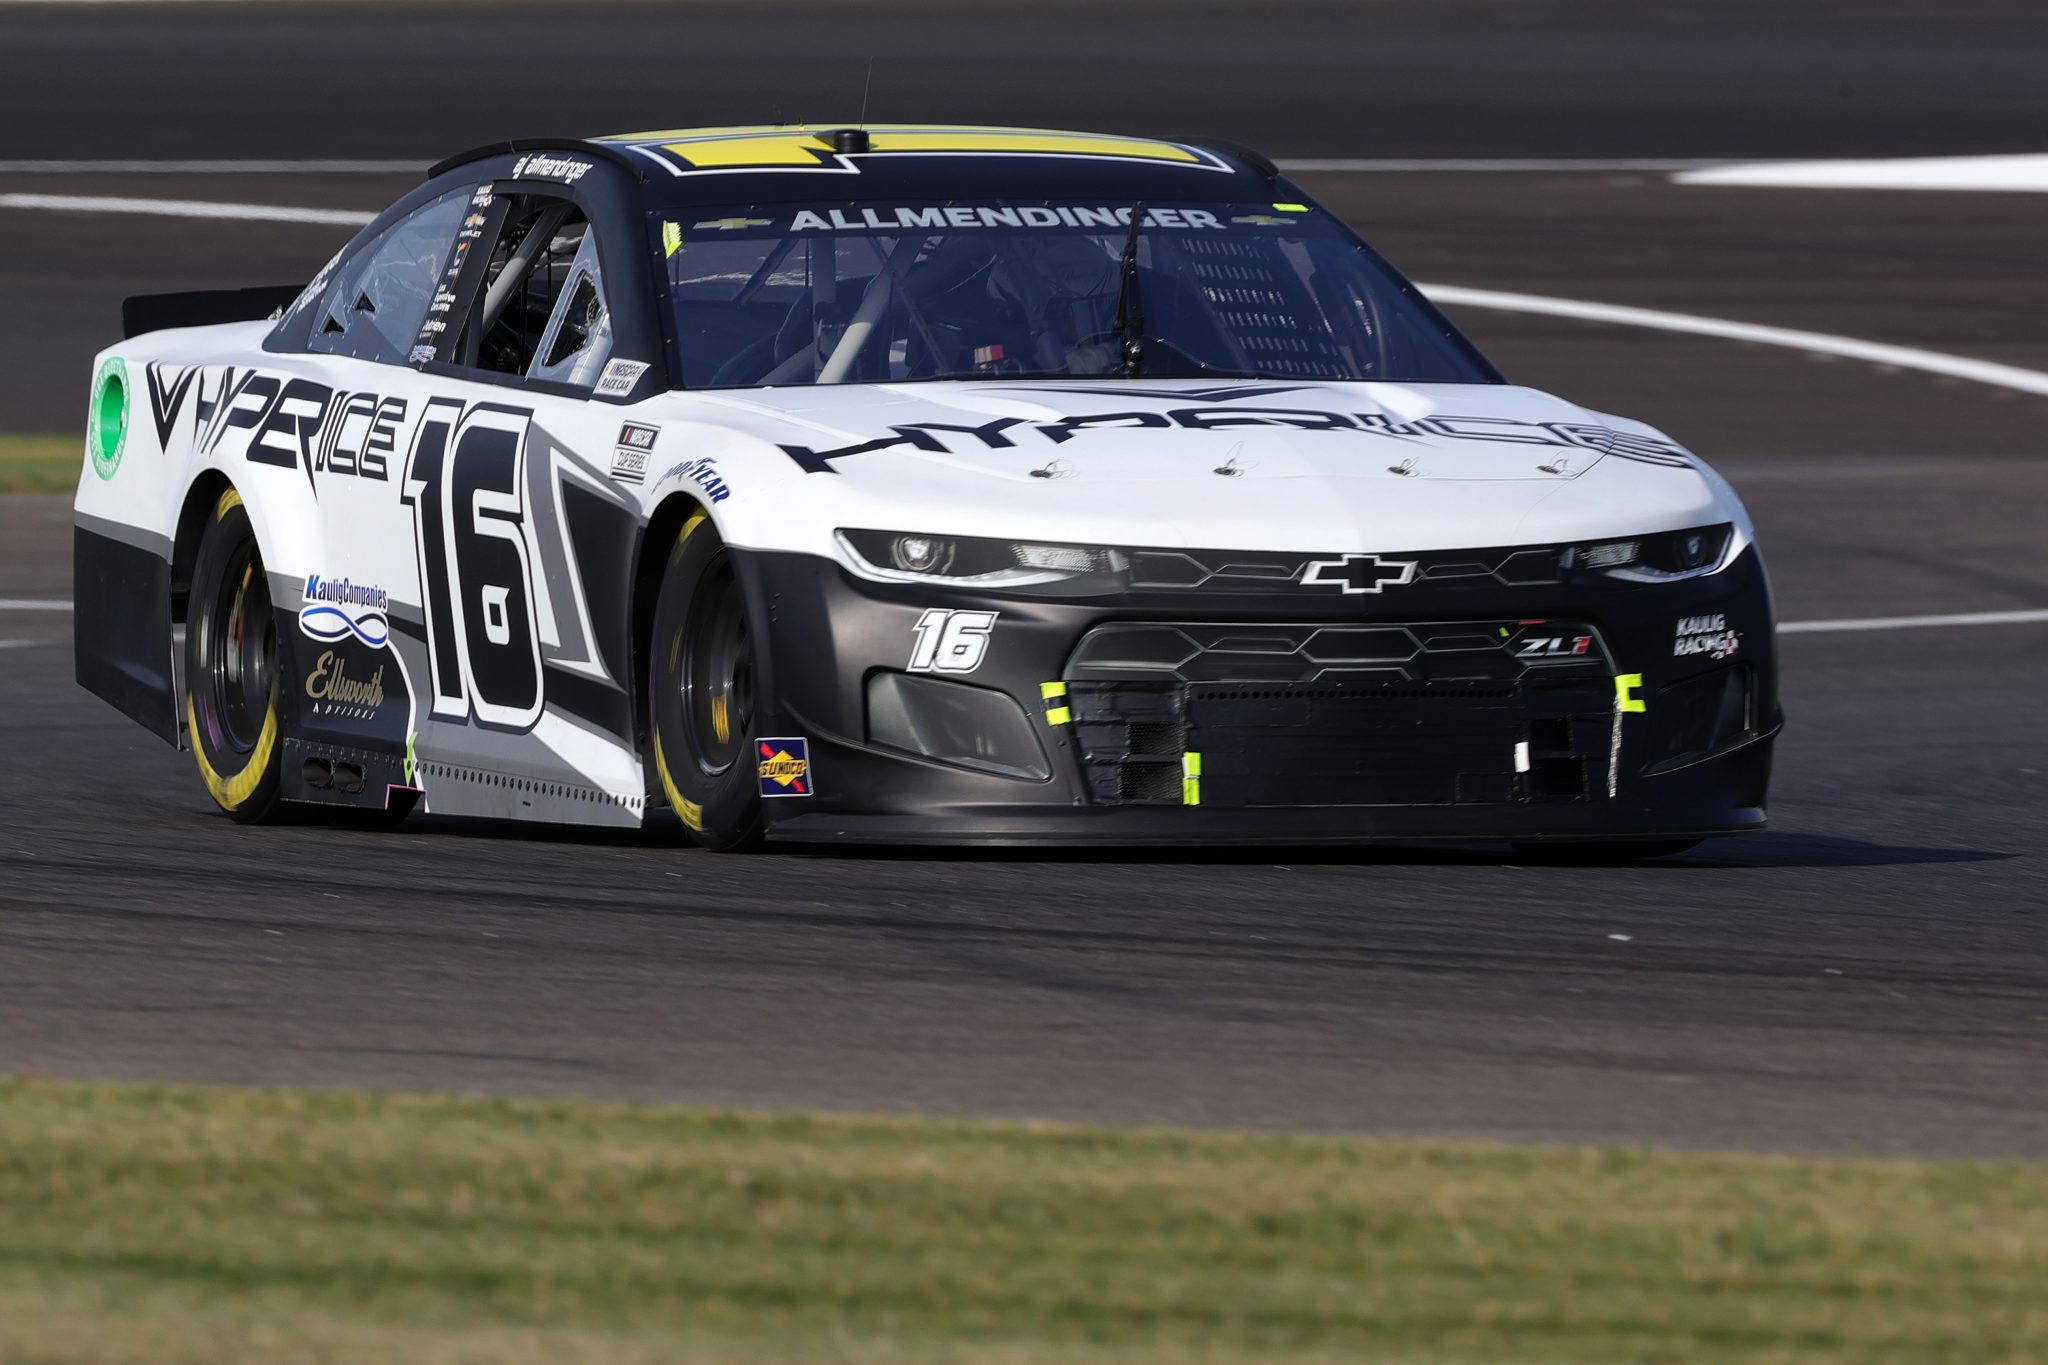 INDIANAPOLIS, INDIANA - AUGUST 15: AJ Allmendinger, driver of the #16 Hyperice Chevrolet, drives during qualifying for the NASCAR Cup Series Verizon 200 at the Brickyard at Indianapolis Motor Speedway on August 15, 2021 in Indianapolis, Indiana. (Photo by Stacy Revere/Getty Images)   Getty Images